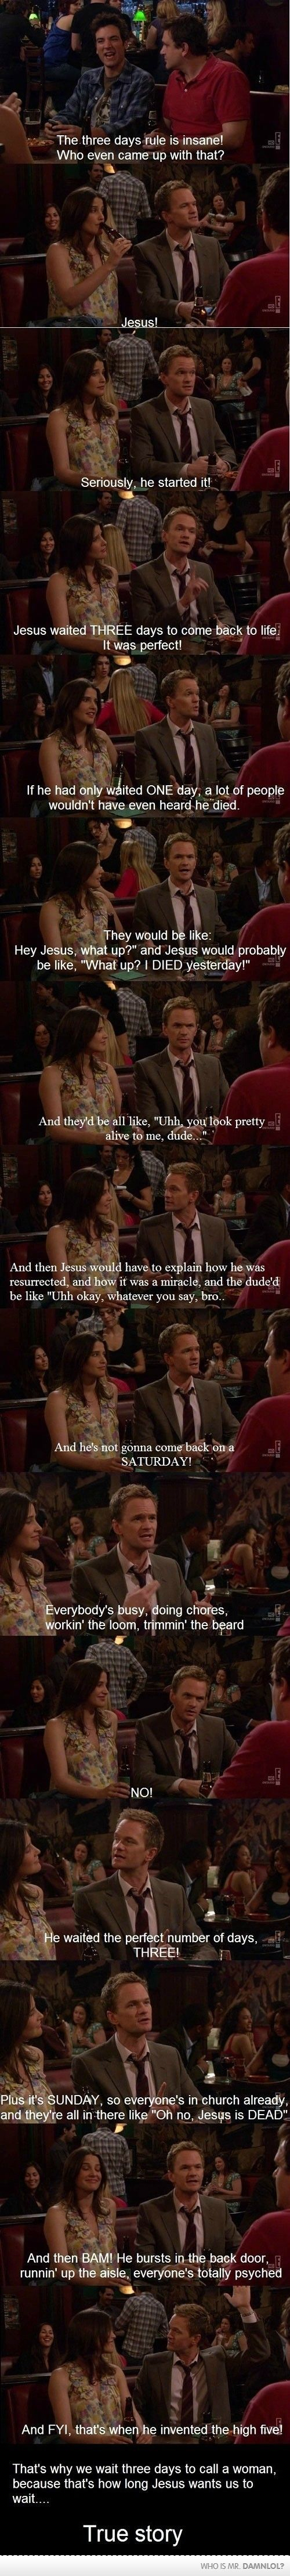 I saw this episode & to this day... It stands as the greatest HIMYM opening lol - Love U Jesus, U Da Man!!!